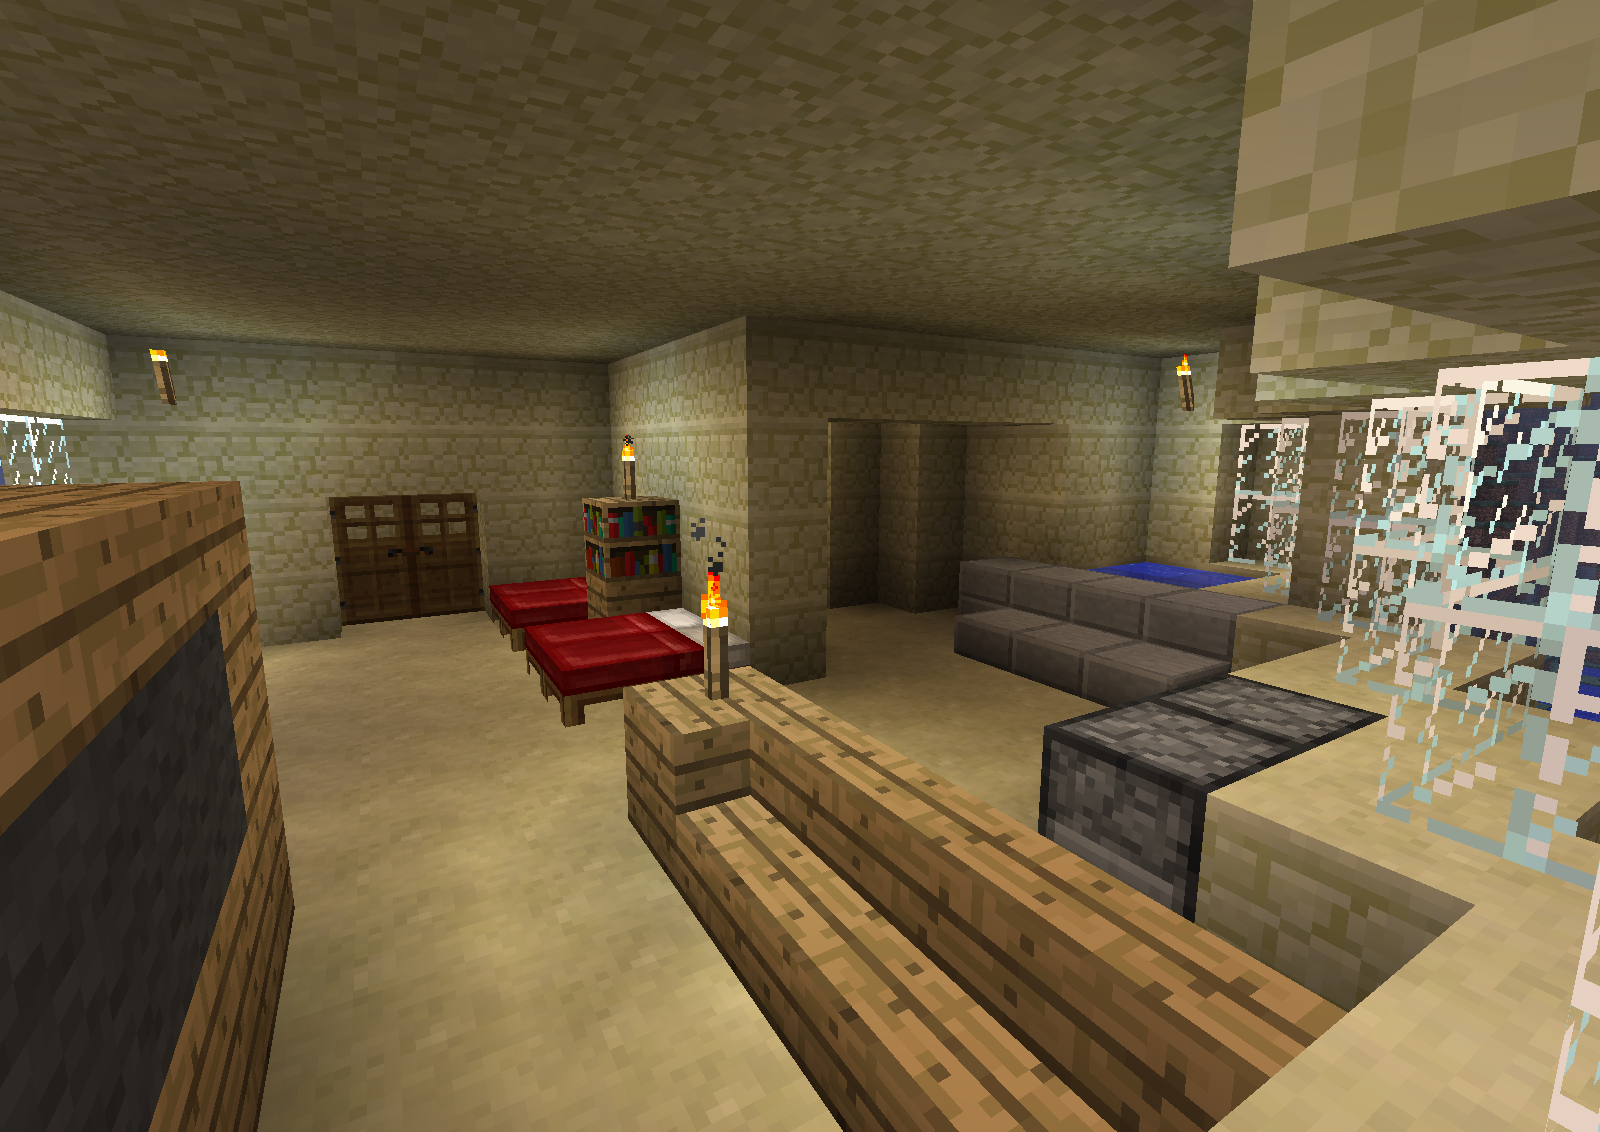 1000 images about minecraft on pinterest minecraft for 10 living room designs minecraft